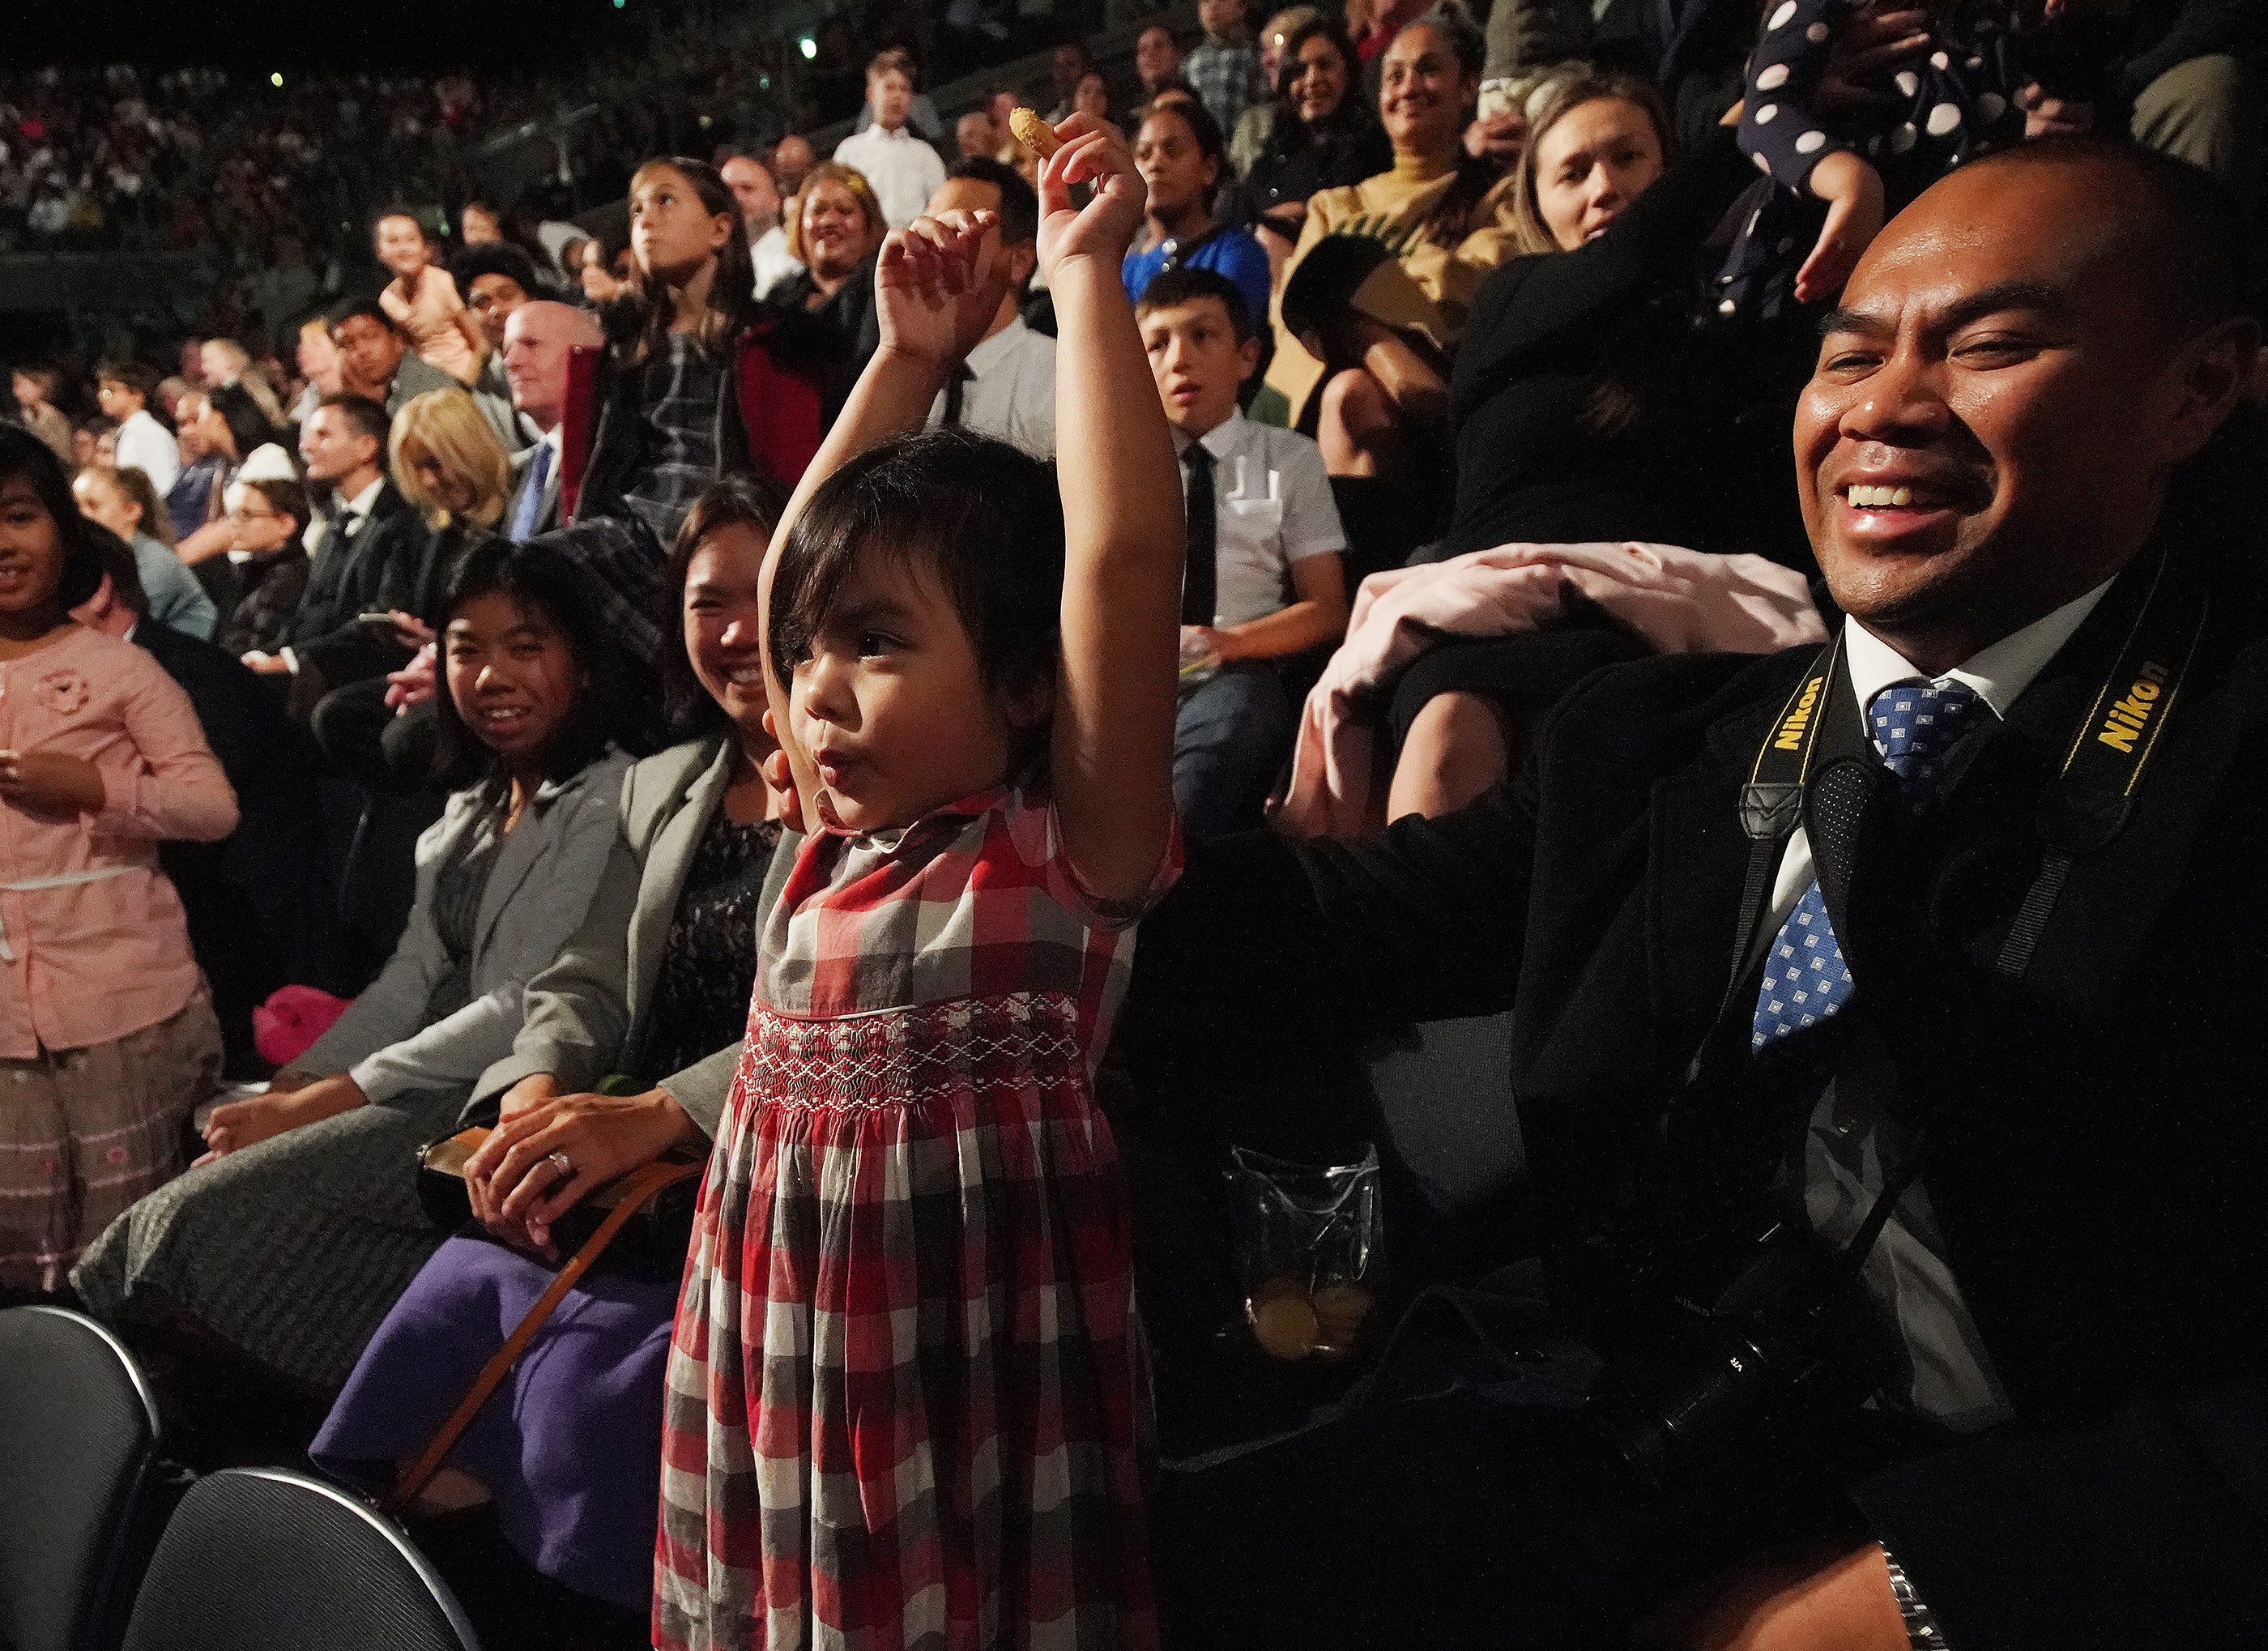 Zeline Soriano, 4, sings after President Russell M. Nelson of The Church of Jesus Christ of Latter-day Saints asked Primary-age children to sing during a devotional at Spark Arena in Auckland, New Zealand, on May 21, 2019.